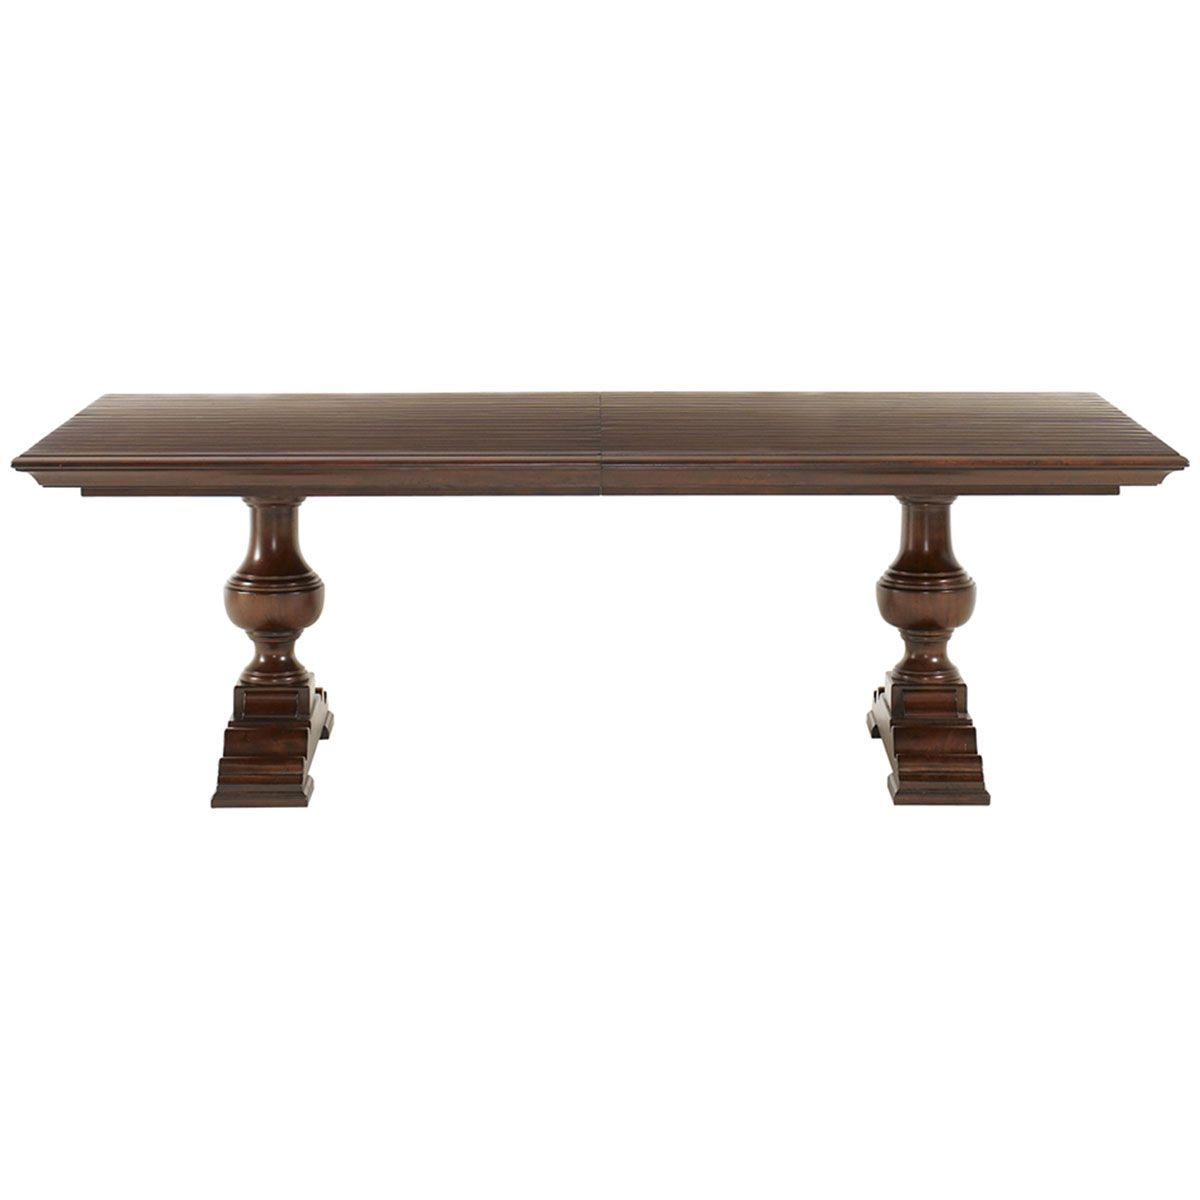 Lexington Fieldale Lodge Silverton Rectangular Dining Table 455-877